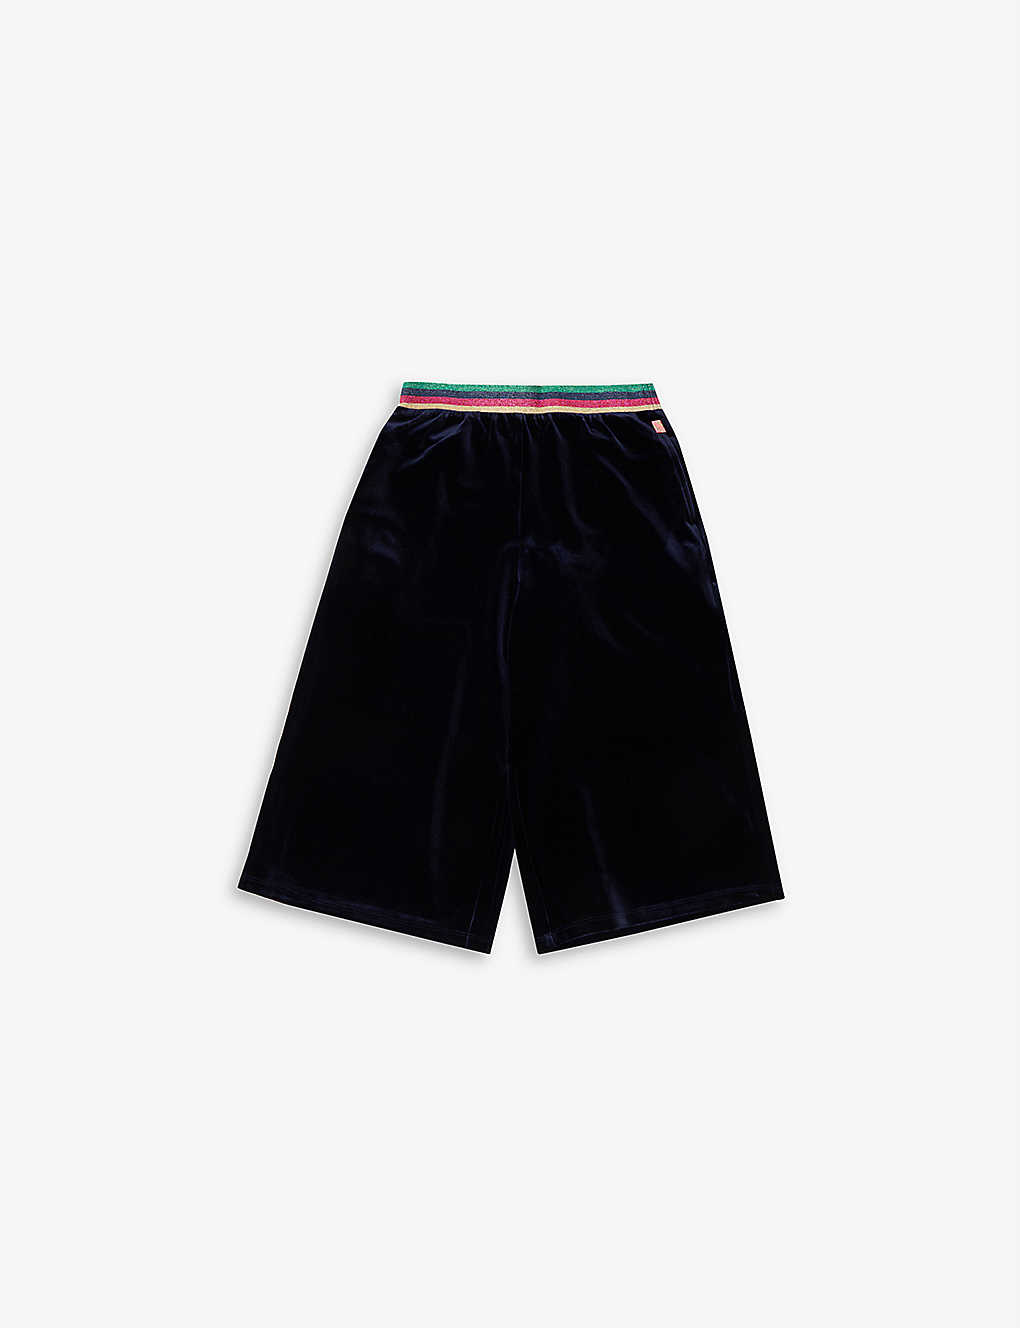 BILLIE BLUSH: Stripe-trimmed stretch-velour culottes 4-12 years